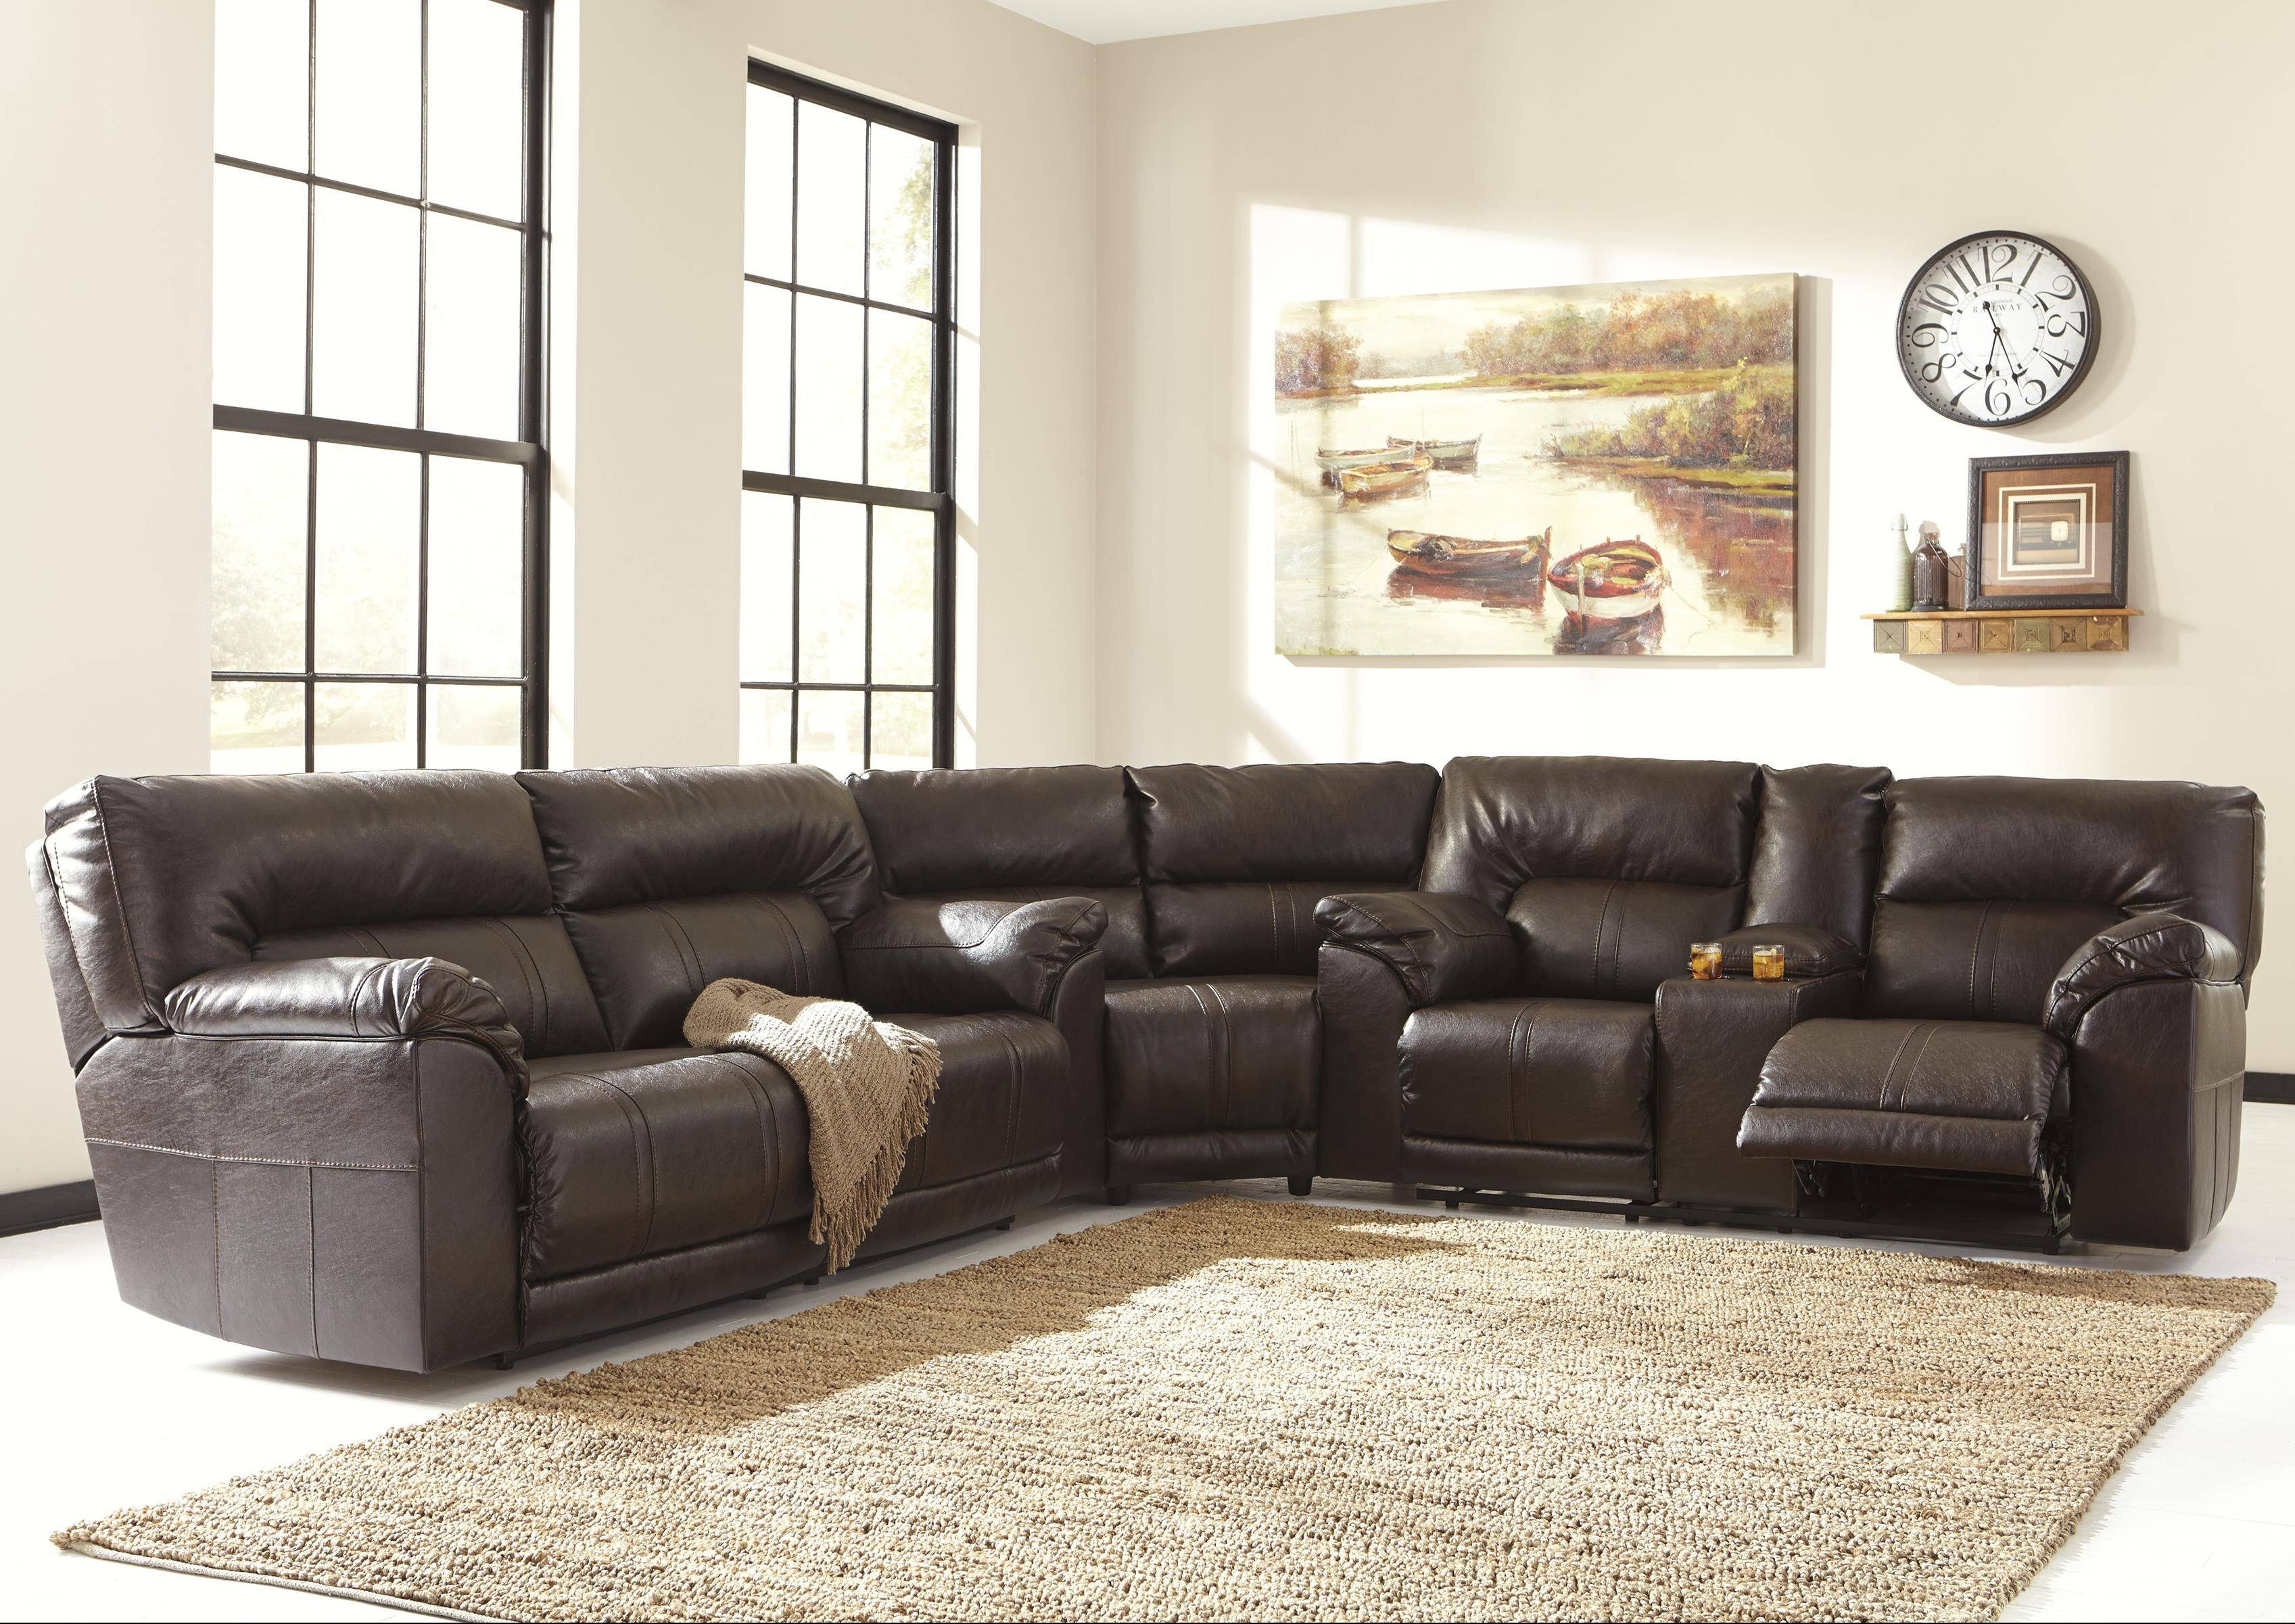 Benchcraft Barrettsville Durablend® 3-Piece Reclining Sectional with regard to Recliner Sectional Sofas (Image 3 of 30)